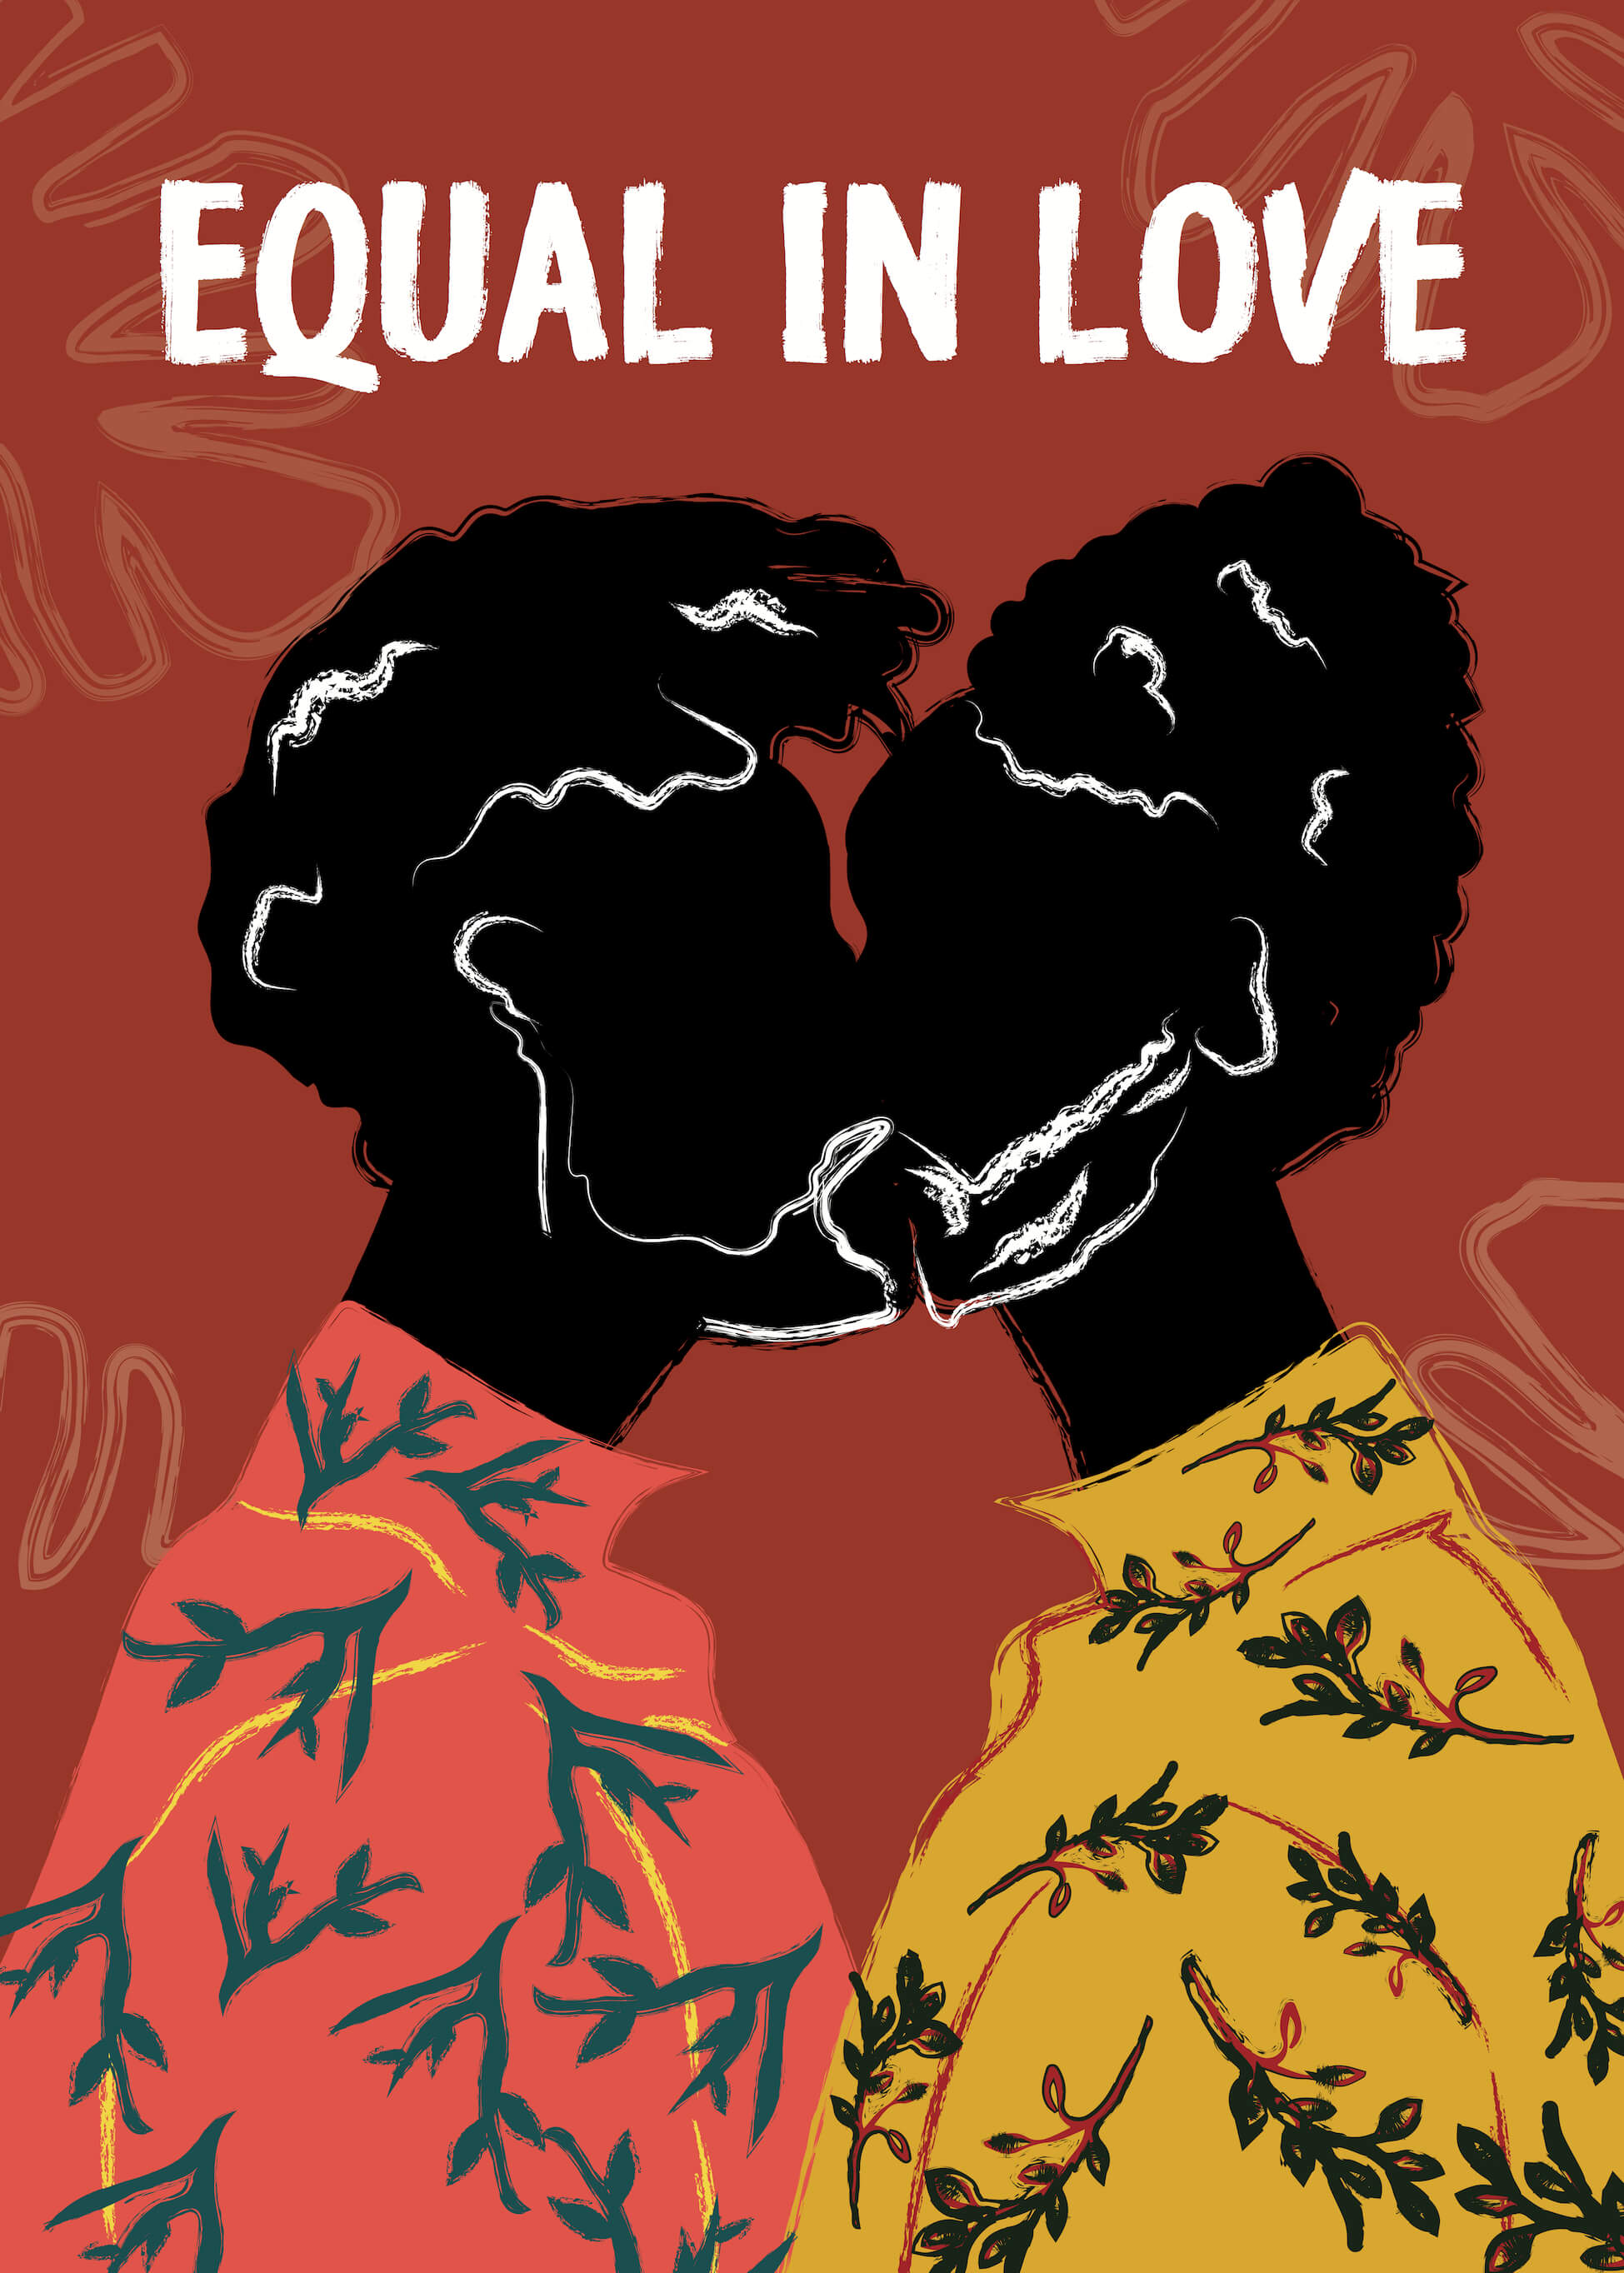 Equal In Love main image